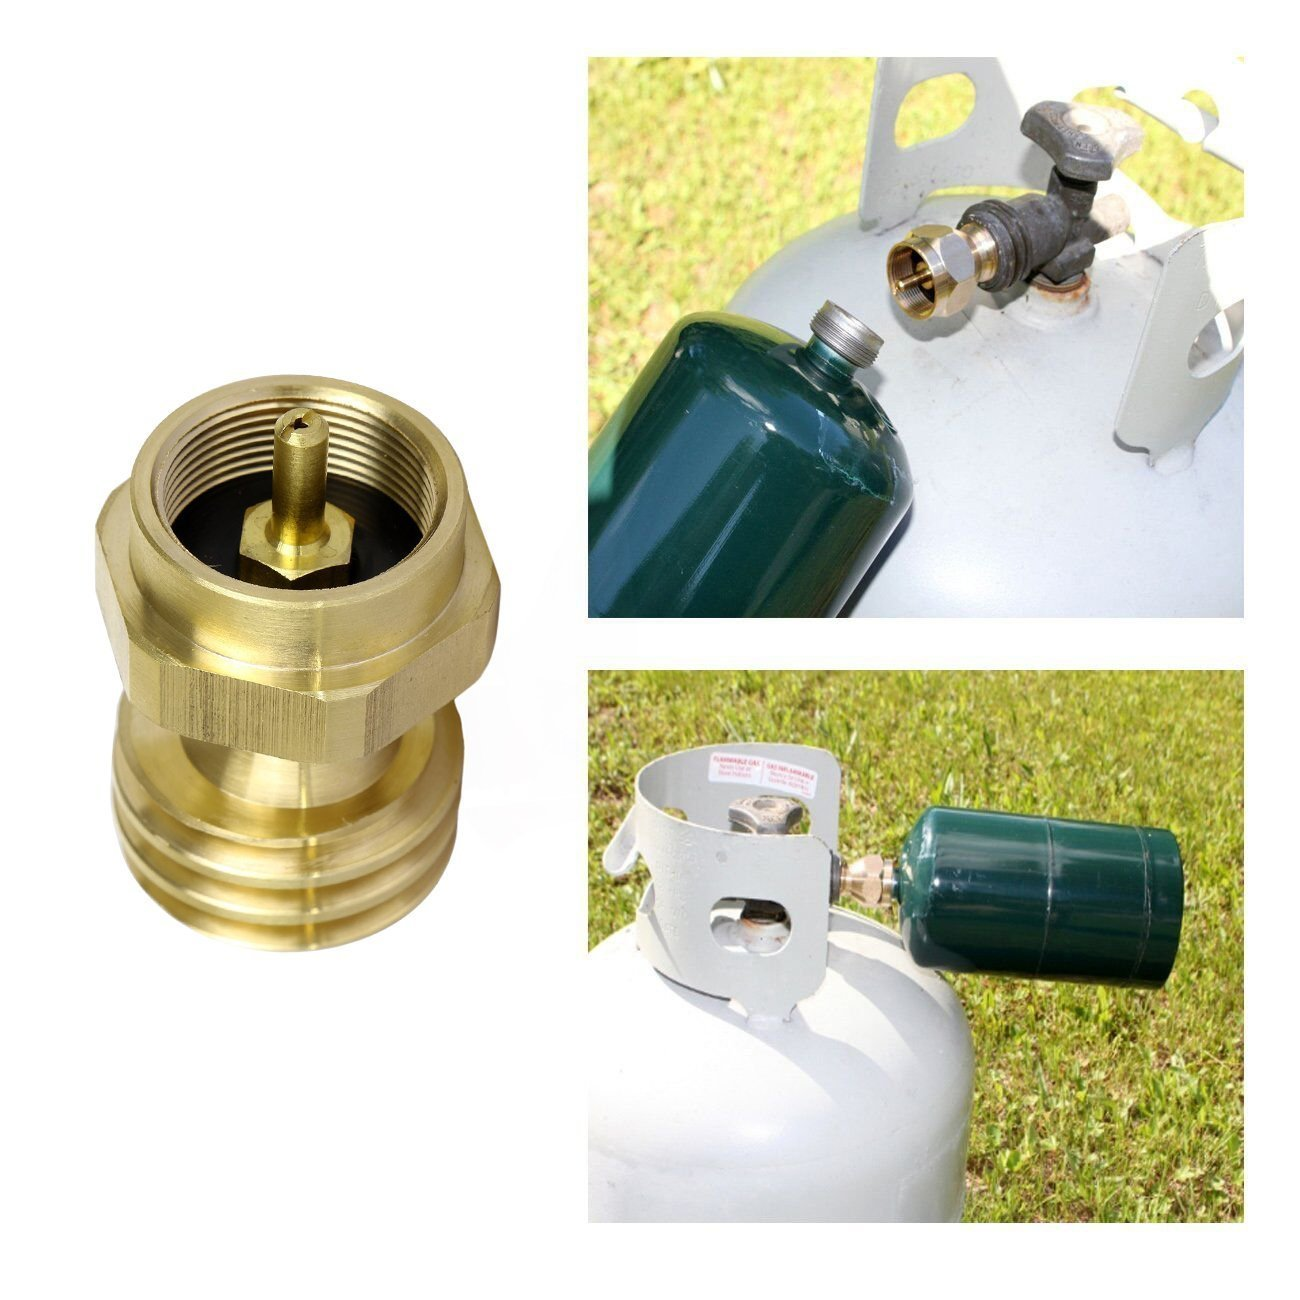 Ridgeyard Brass 1 Pound Propane Tank Connector Propane Refill Adapter Gas Grill Valves Steel Propane Cylinder with Type 1 for All 1 LB Throwaway Disposable Cylinder